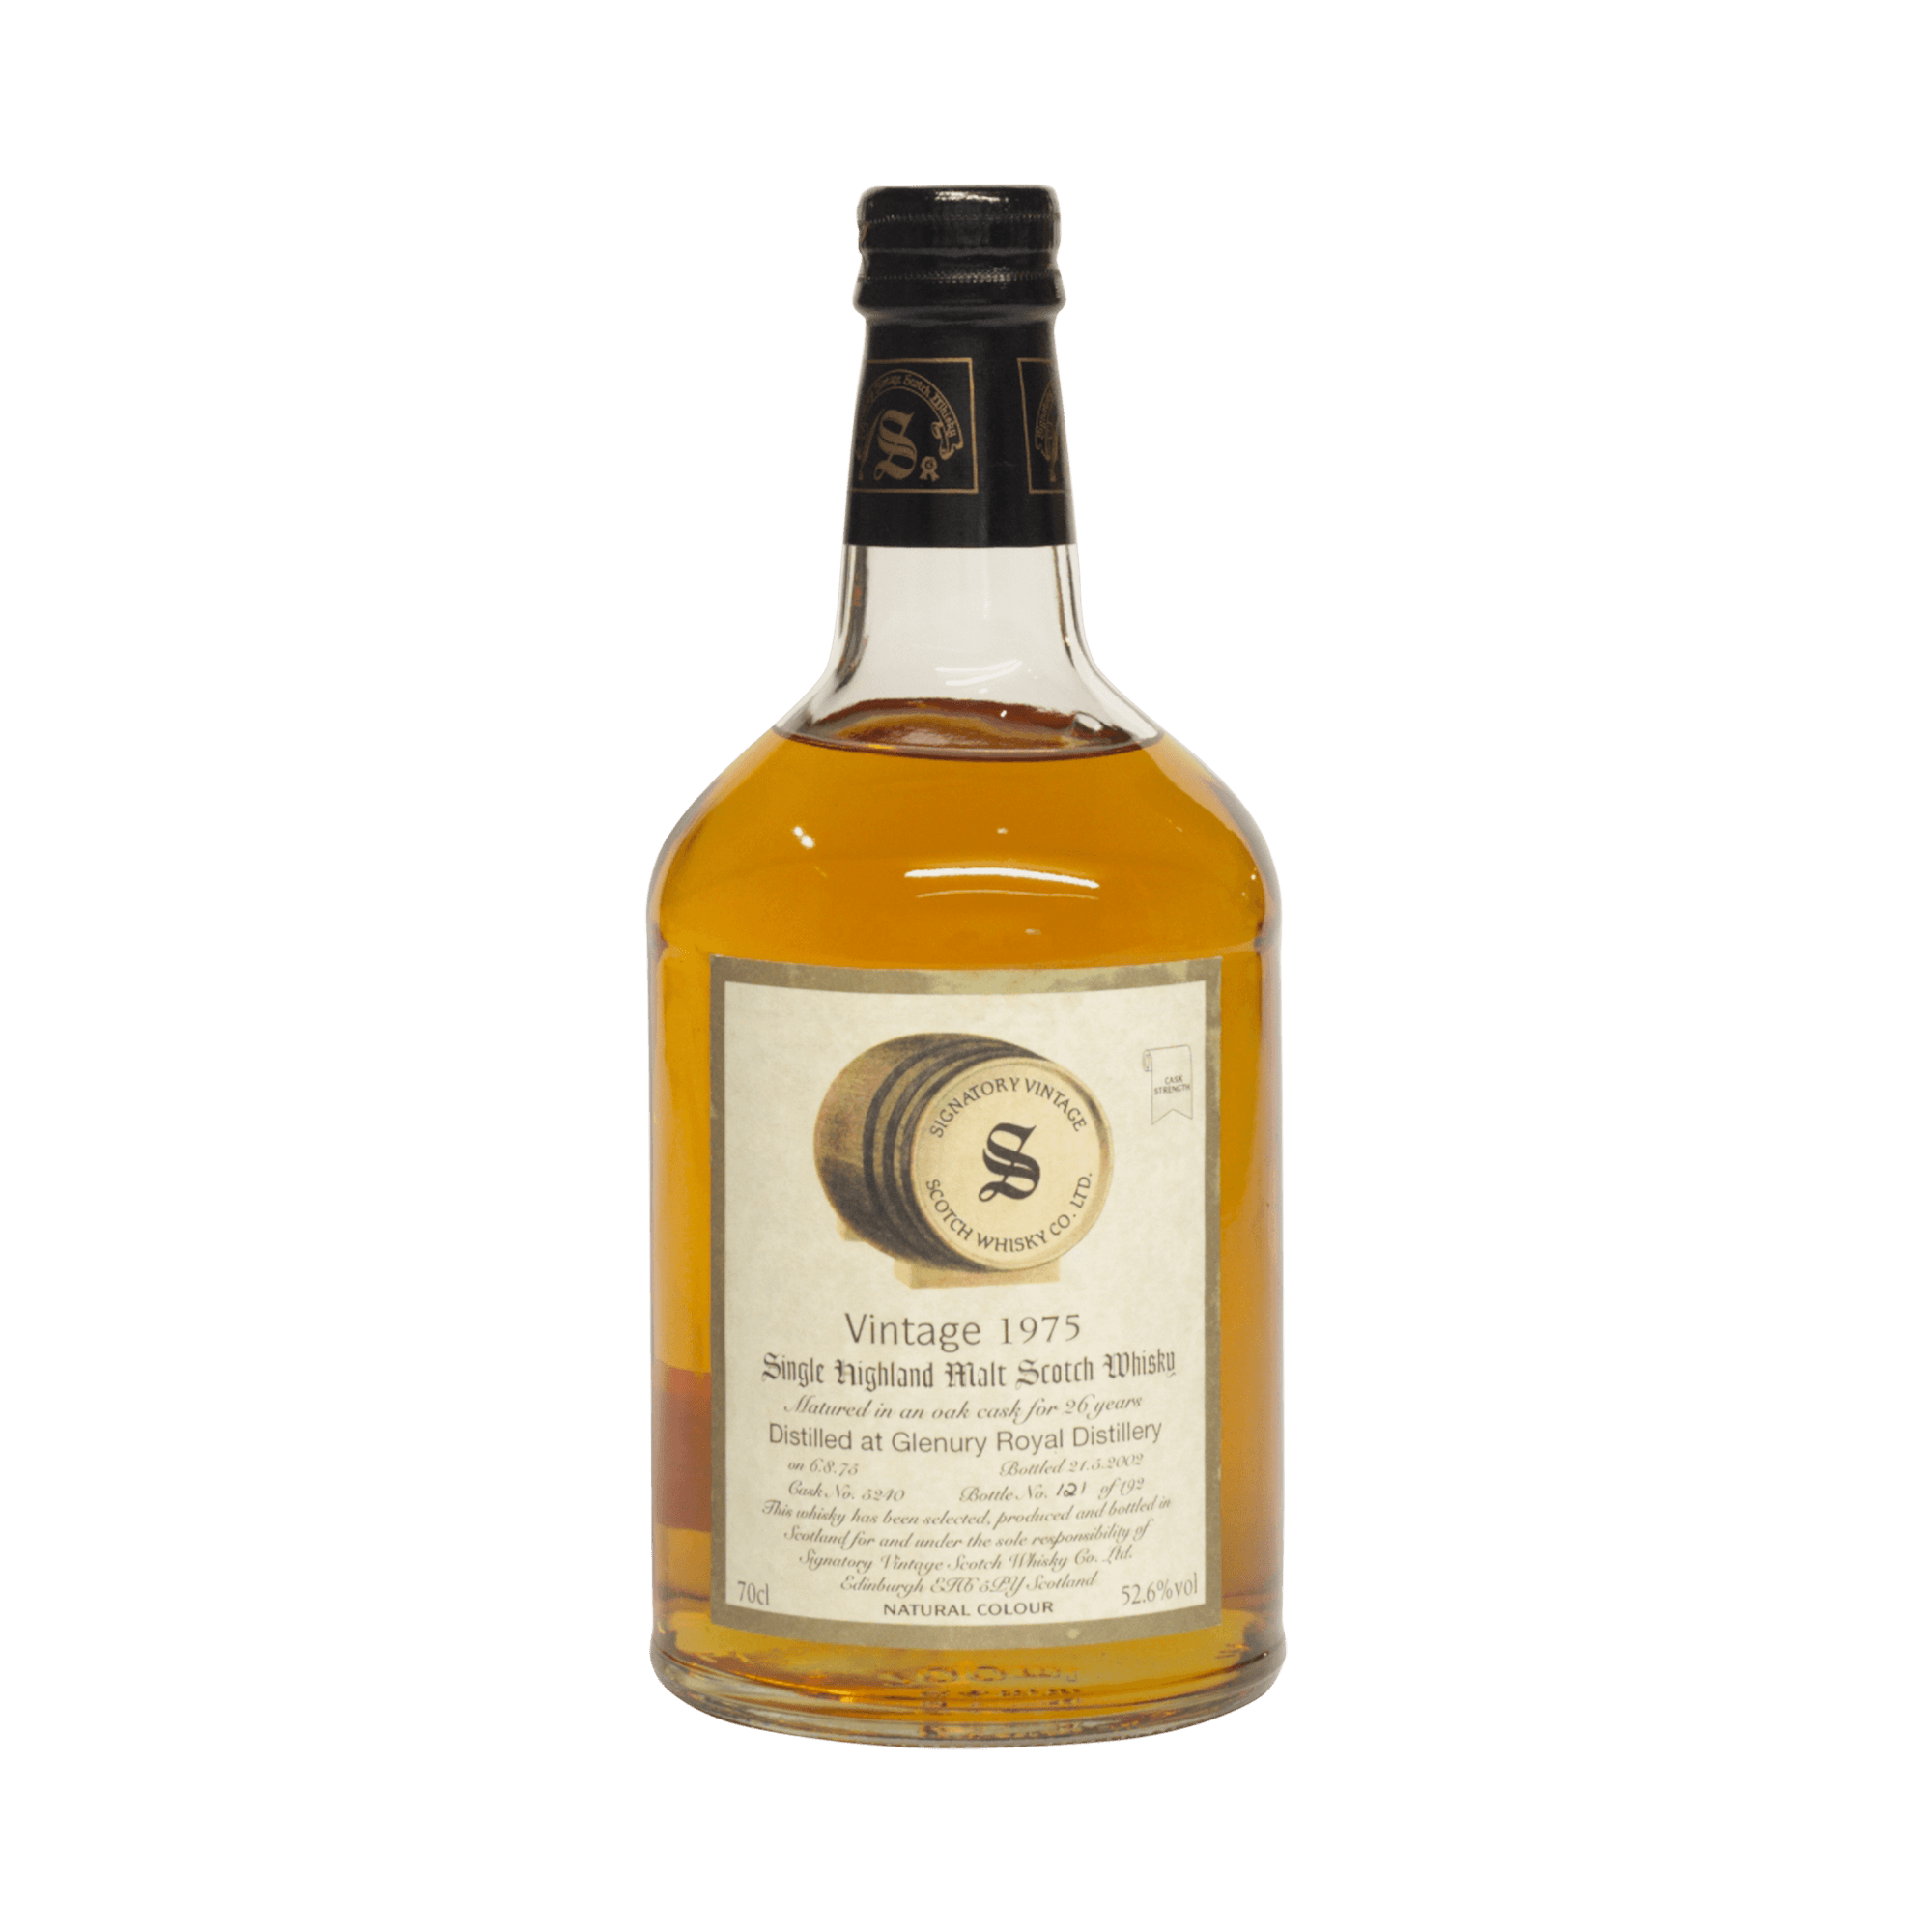 Glenury Royal 1975 26 Year Old Signatory Vintage SW 52.60%